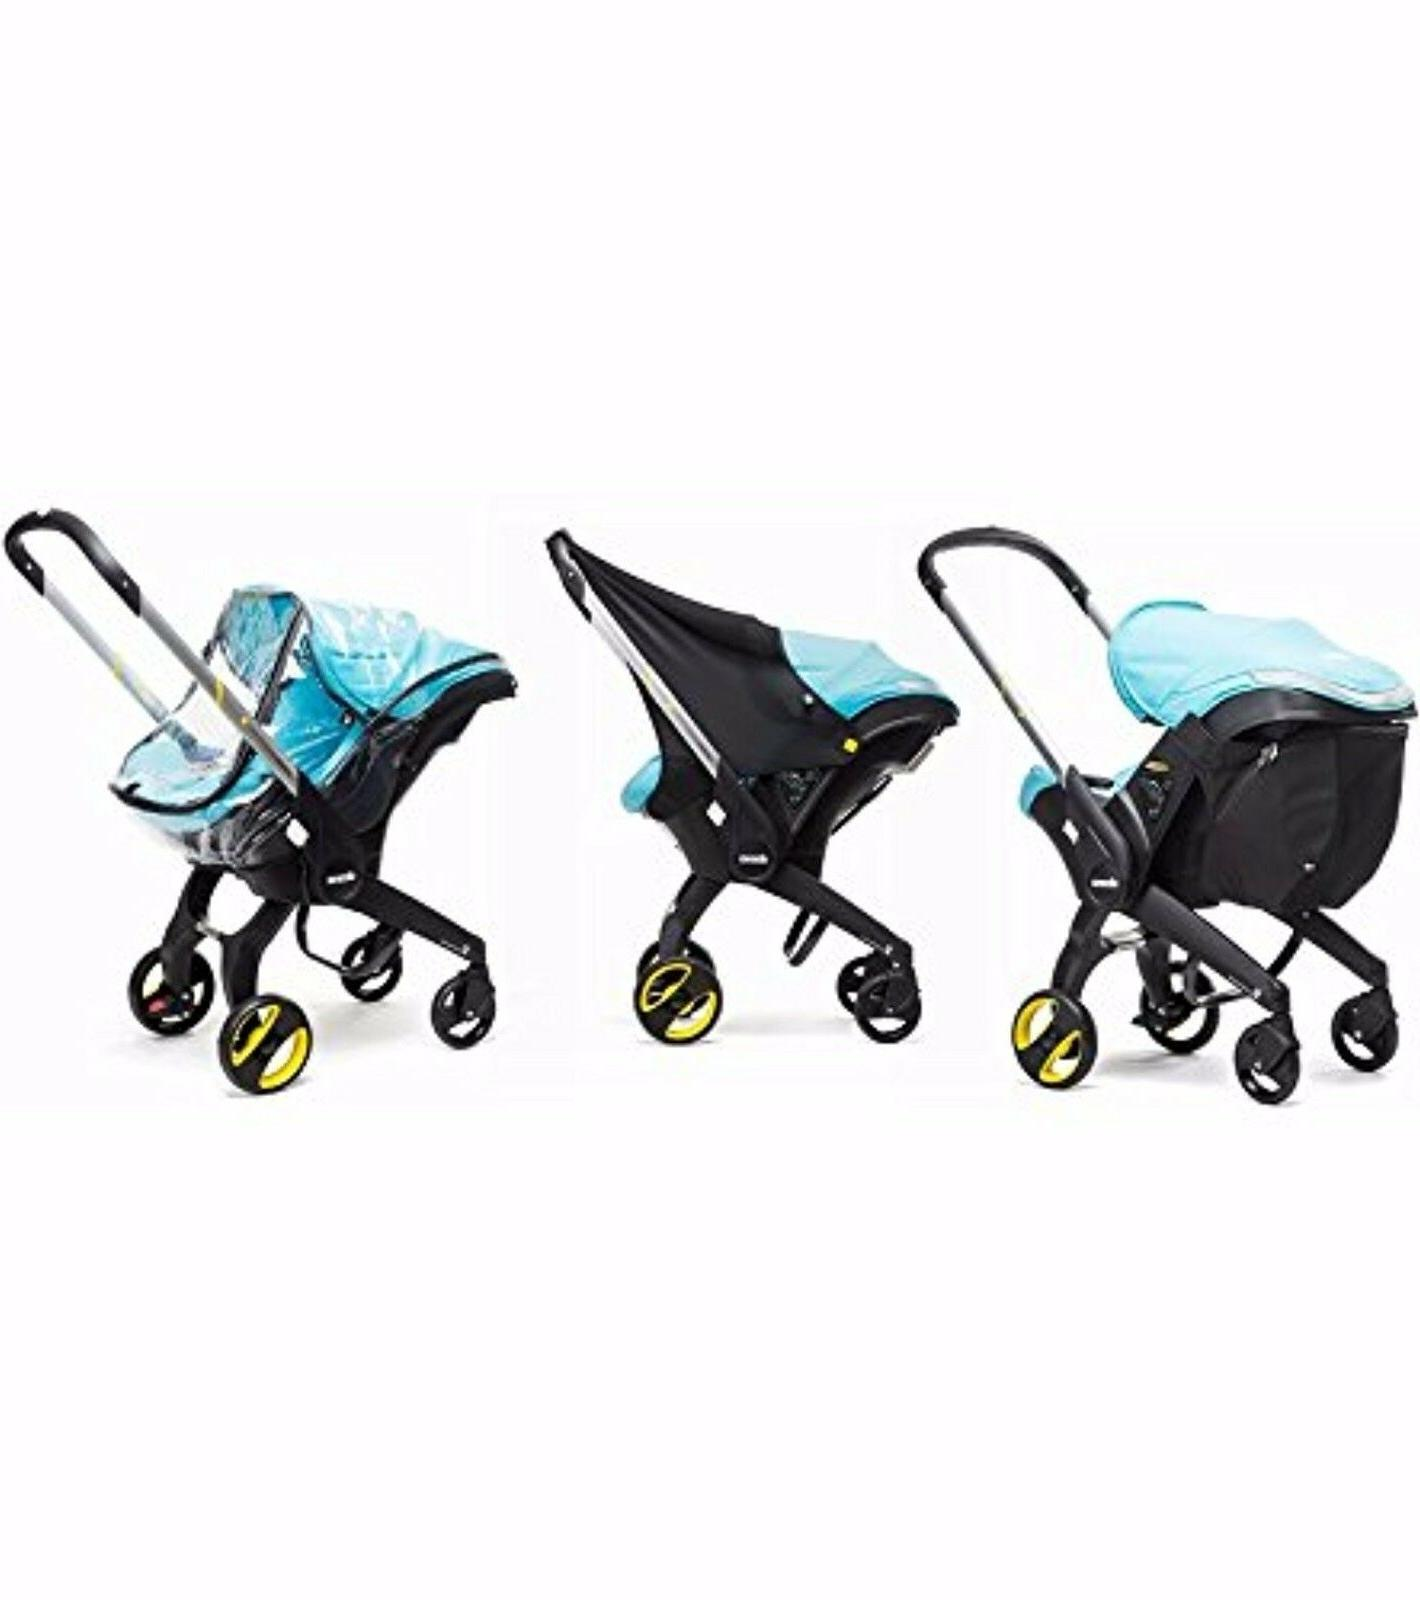 Pram Doona 5 Pc Set - CAR PLUS Set SHIP